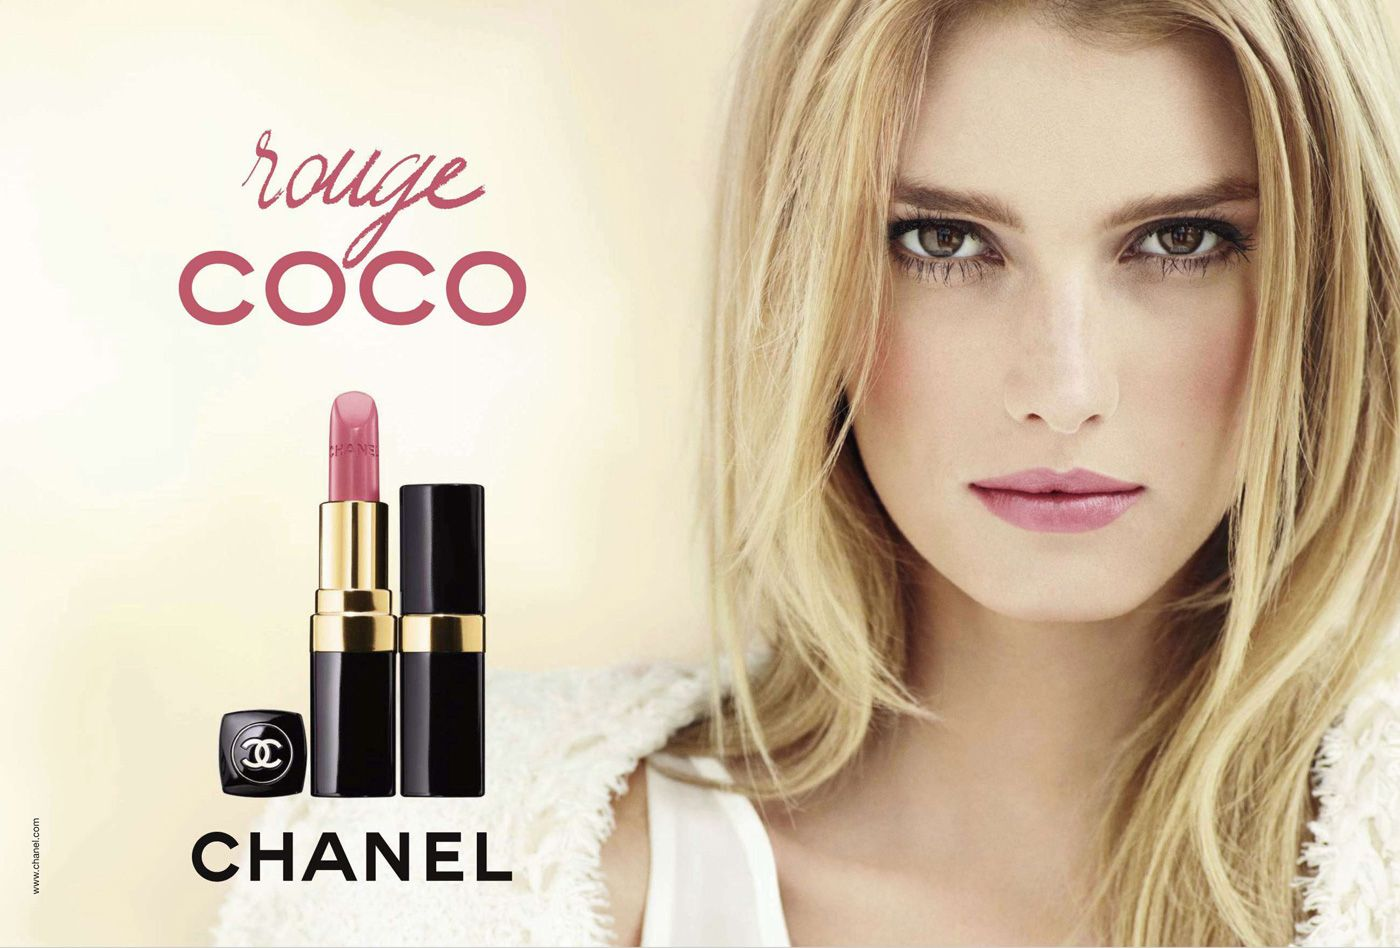 Sigrid Agren for Chanel's Rouge Coco